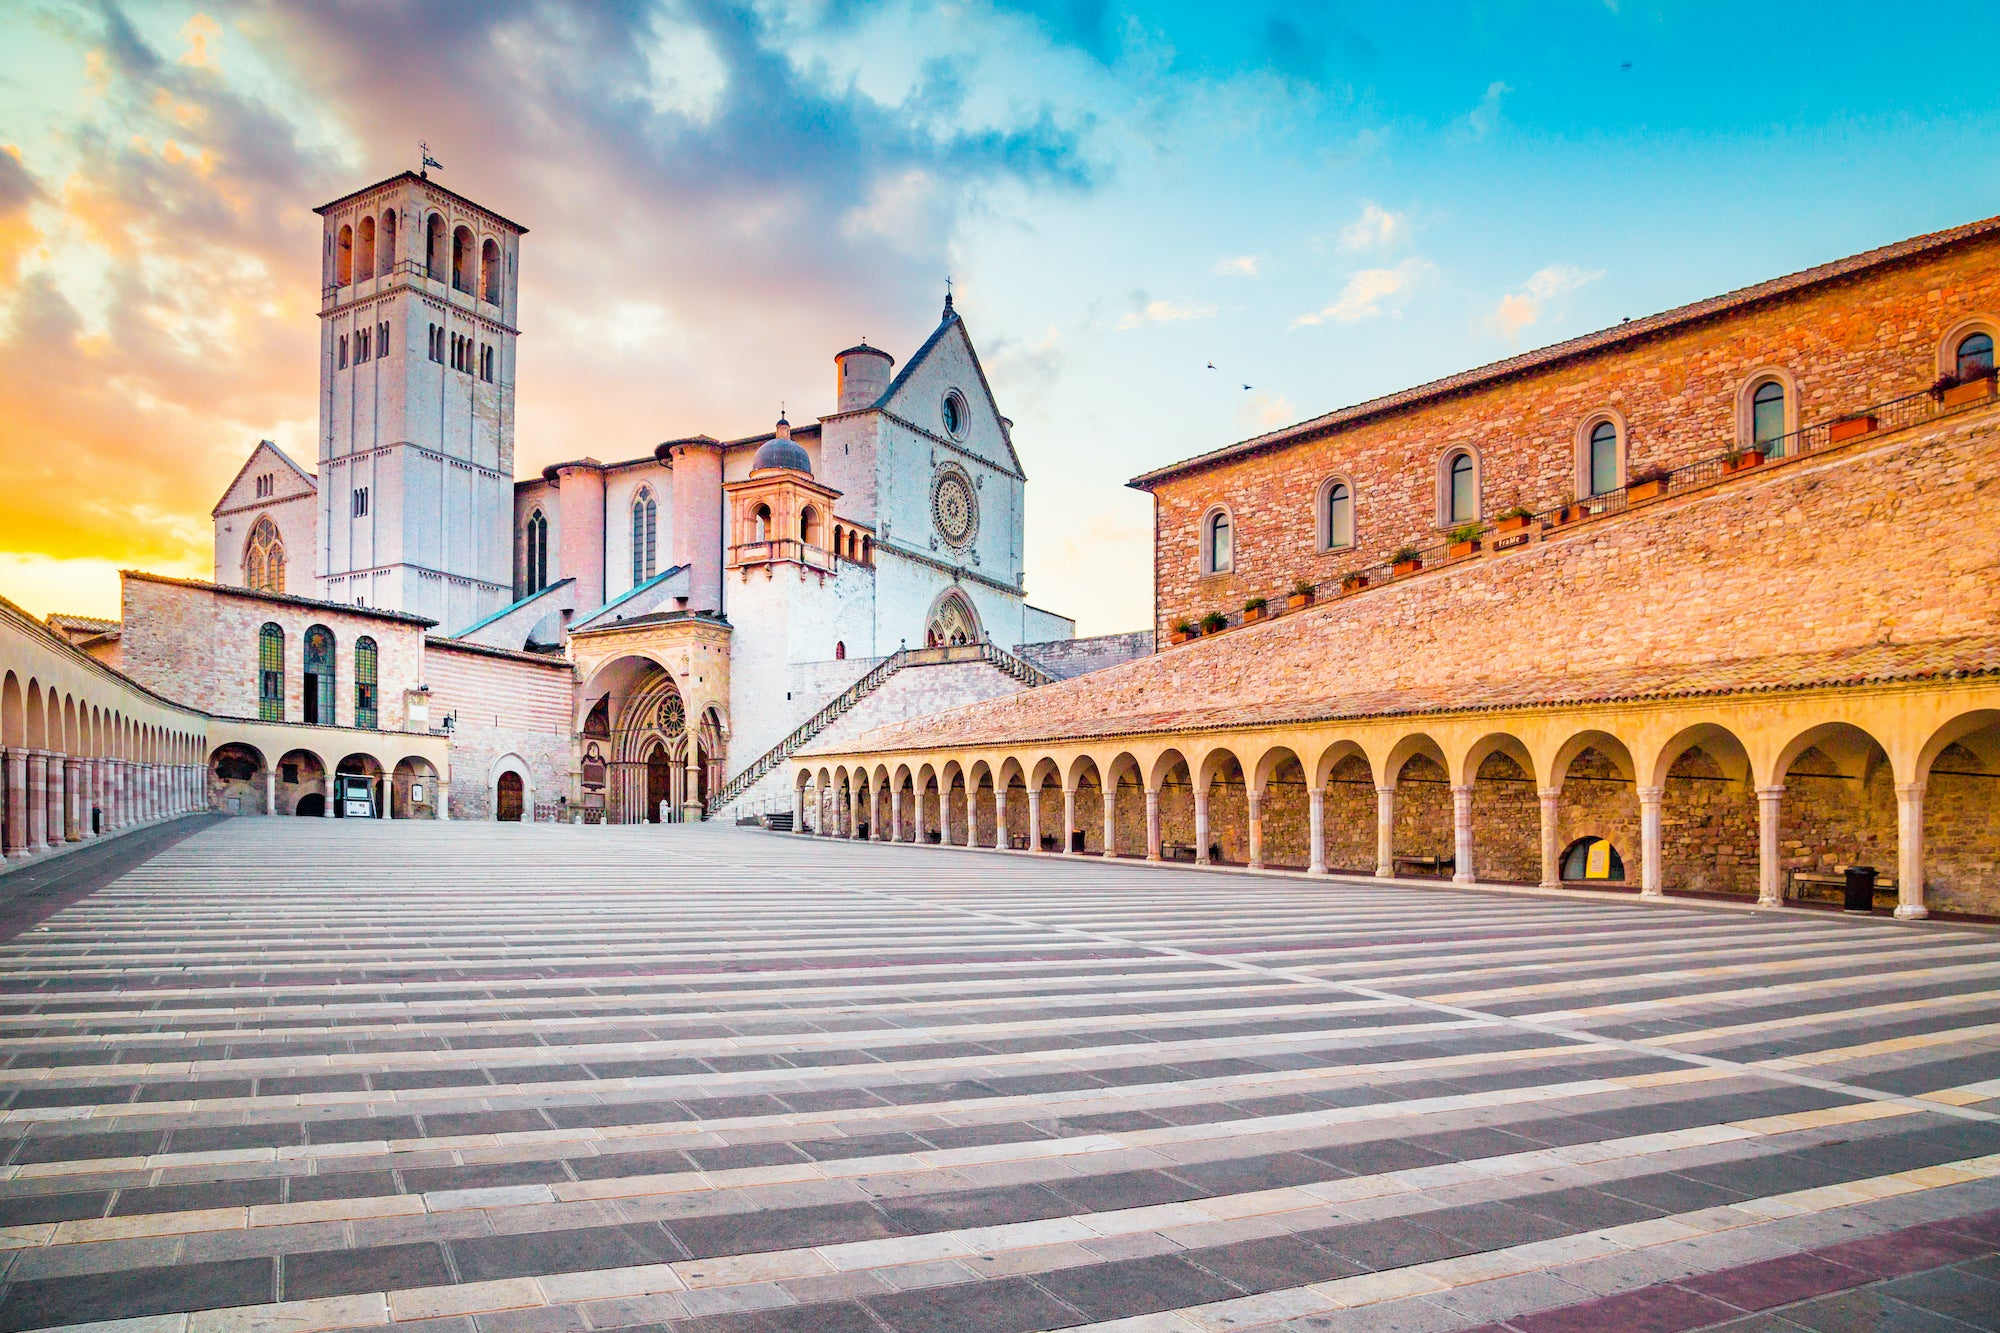 Umbria- Assisi, Basilica di San Francesco ( Assisi, Basilica of Saint Francis)